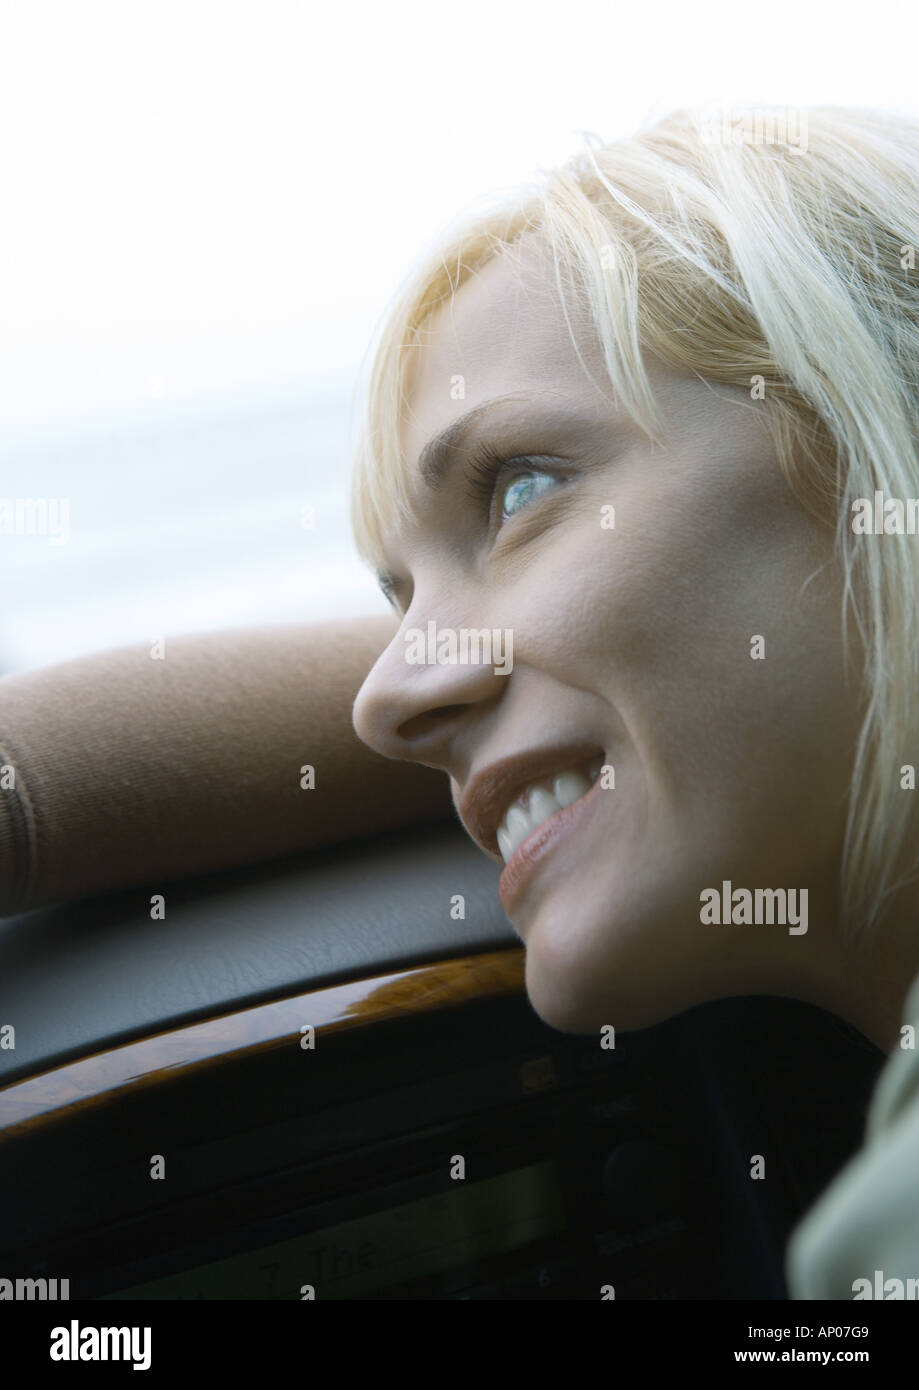 Woman leaning head on dashboard - Stock Image